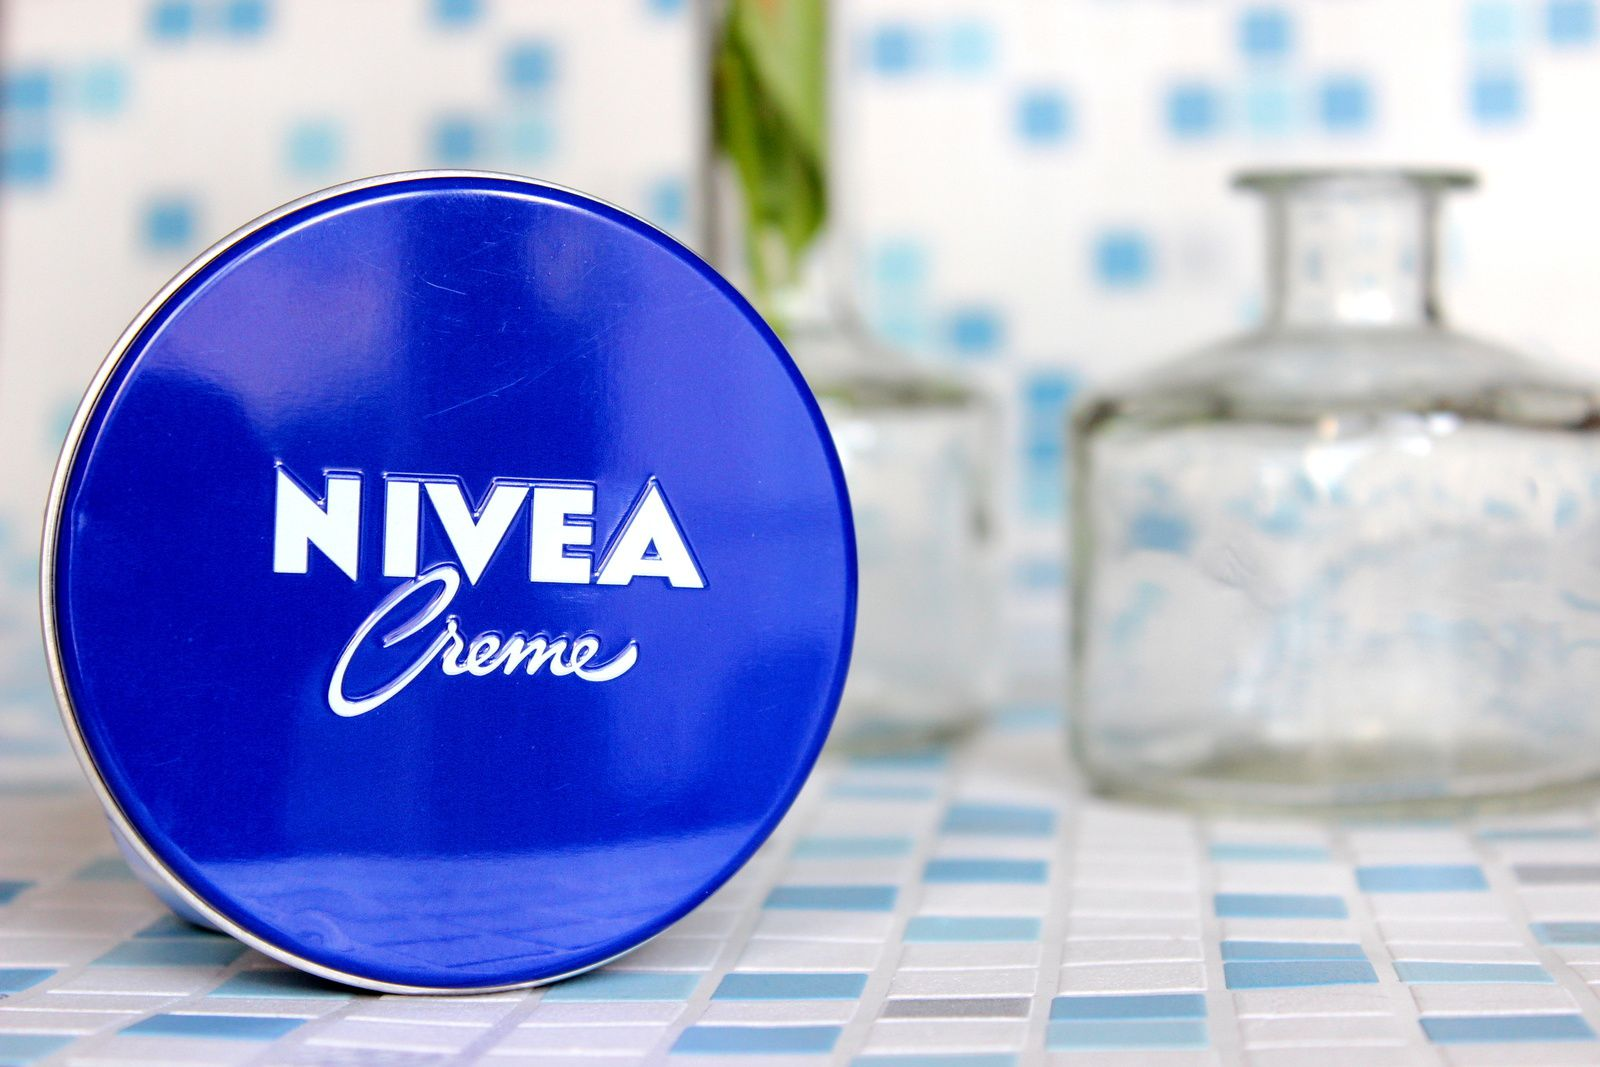 Nivea save the cream